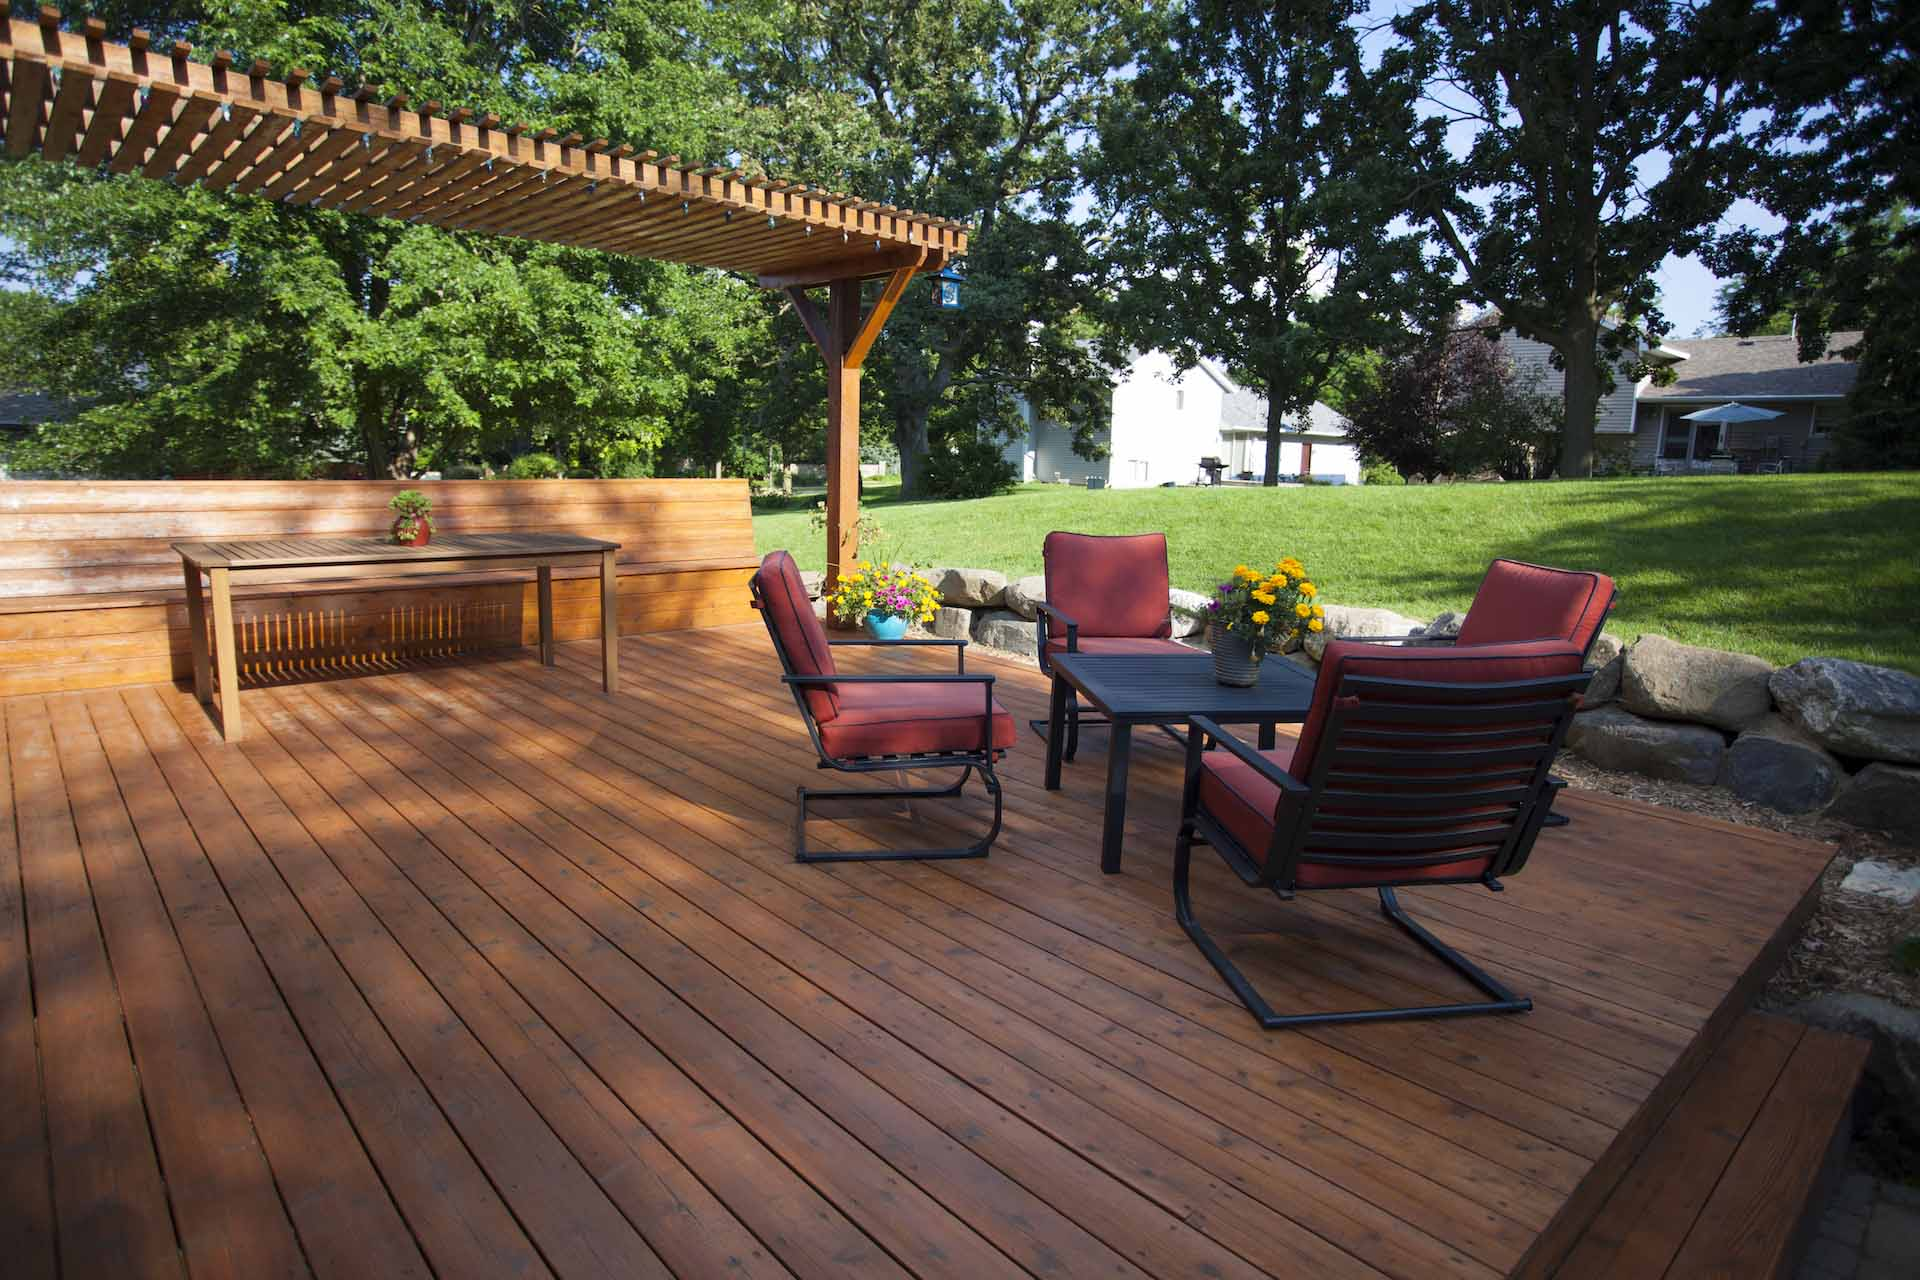 Types of Hardscapes: Wood or Composite Decking